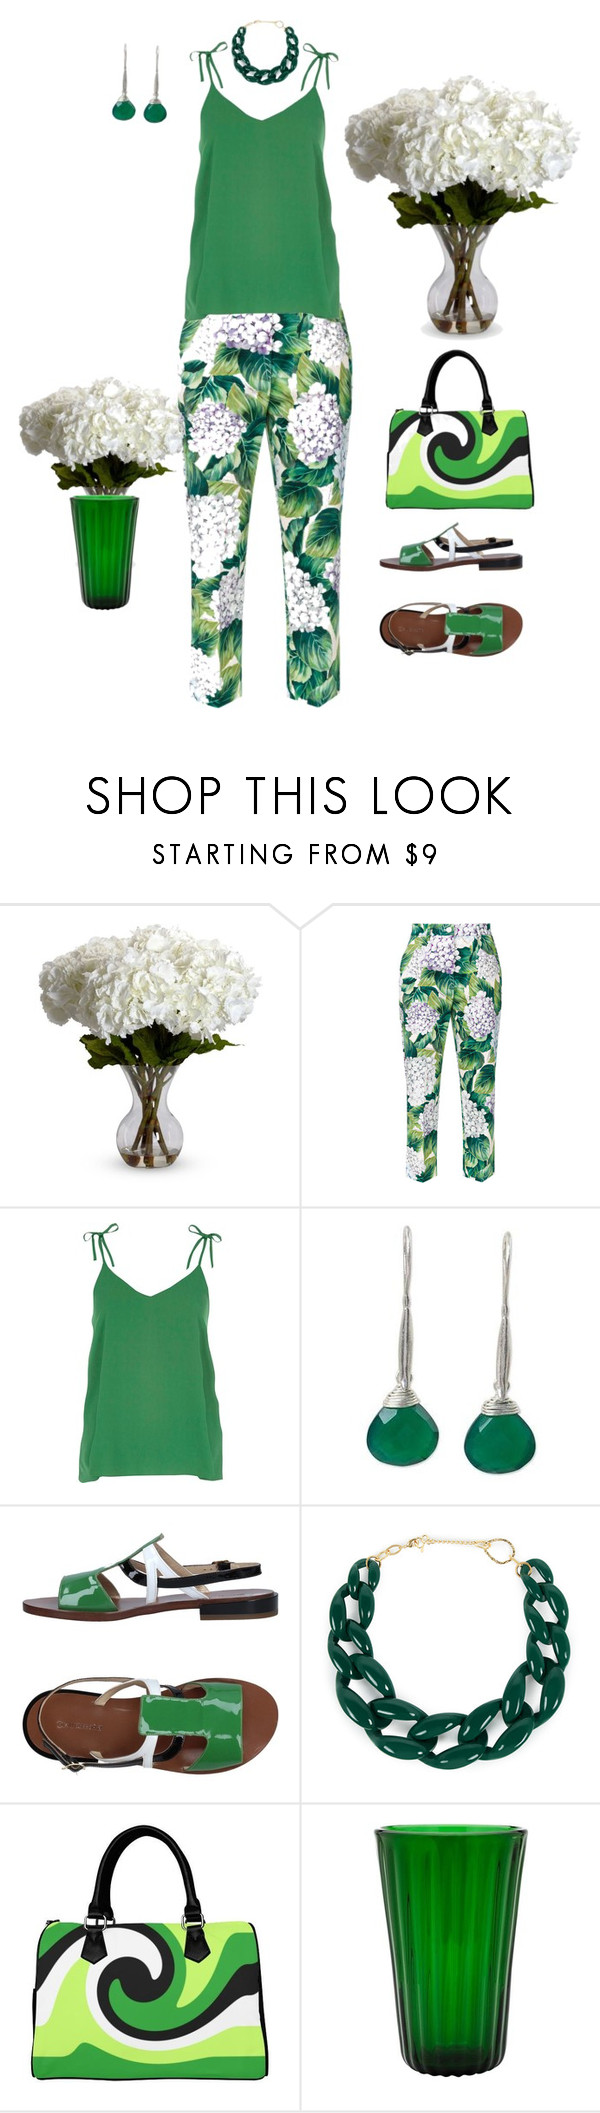 """""""Hydrangea"""" by babygirltrice ❤ liked on Polyvore featuring Nearly Natural, Dolce&Gabbana, NOVICA, L'Autre Chose, Joomi Lim and Eligo"""